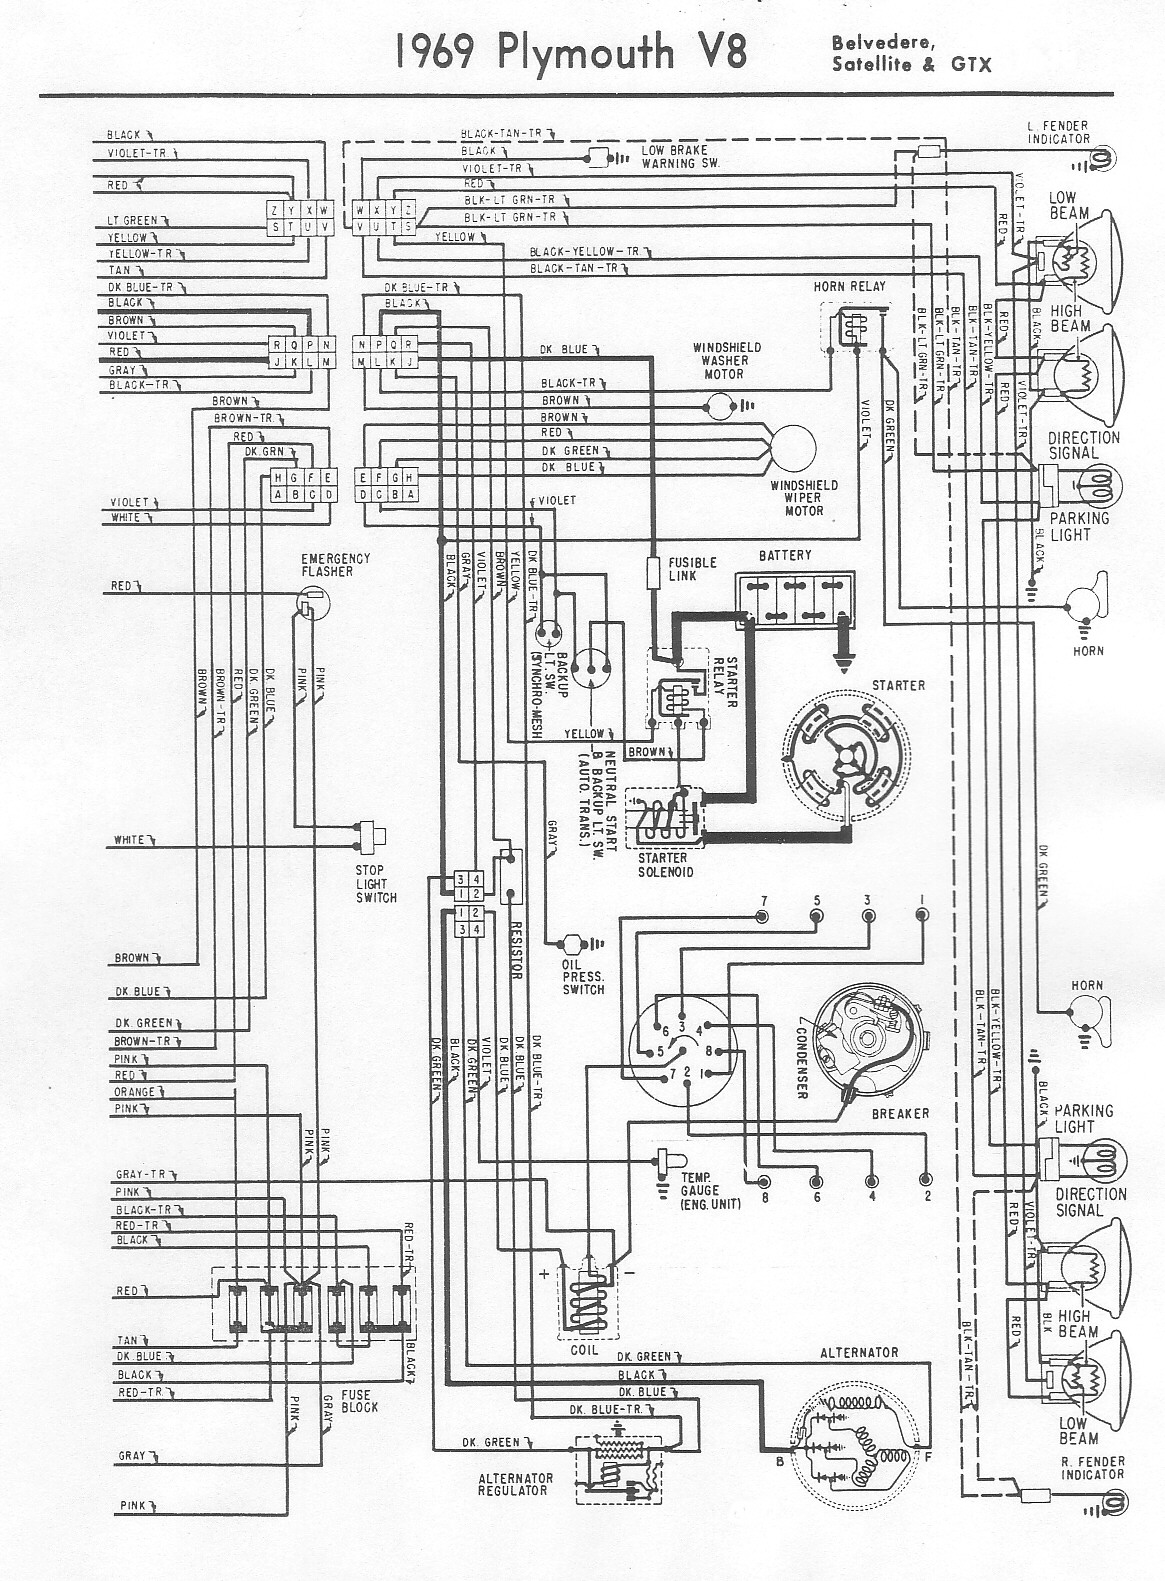 1966 Chevy Impala Wiper Wiring Library Nova Diagram Schematic 68 Dodge Coronet Opinions About U2022 Imperial Diagrams 66 Mopar